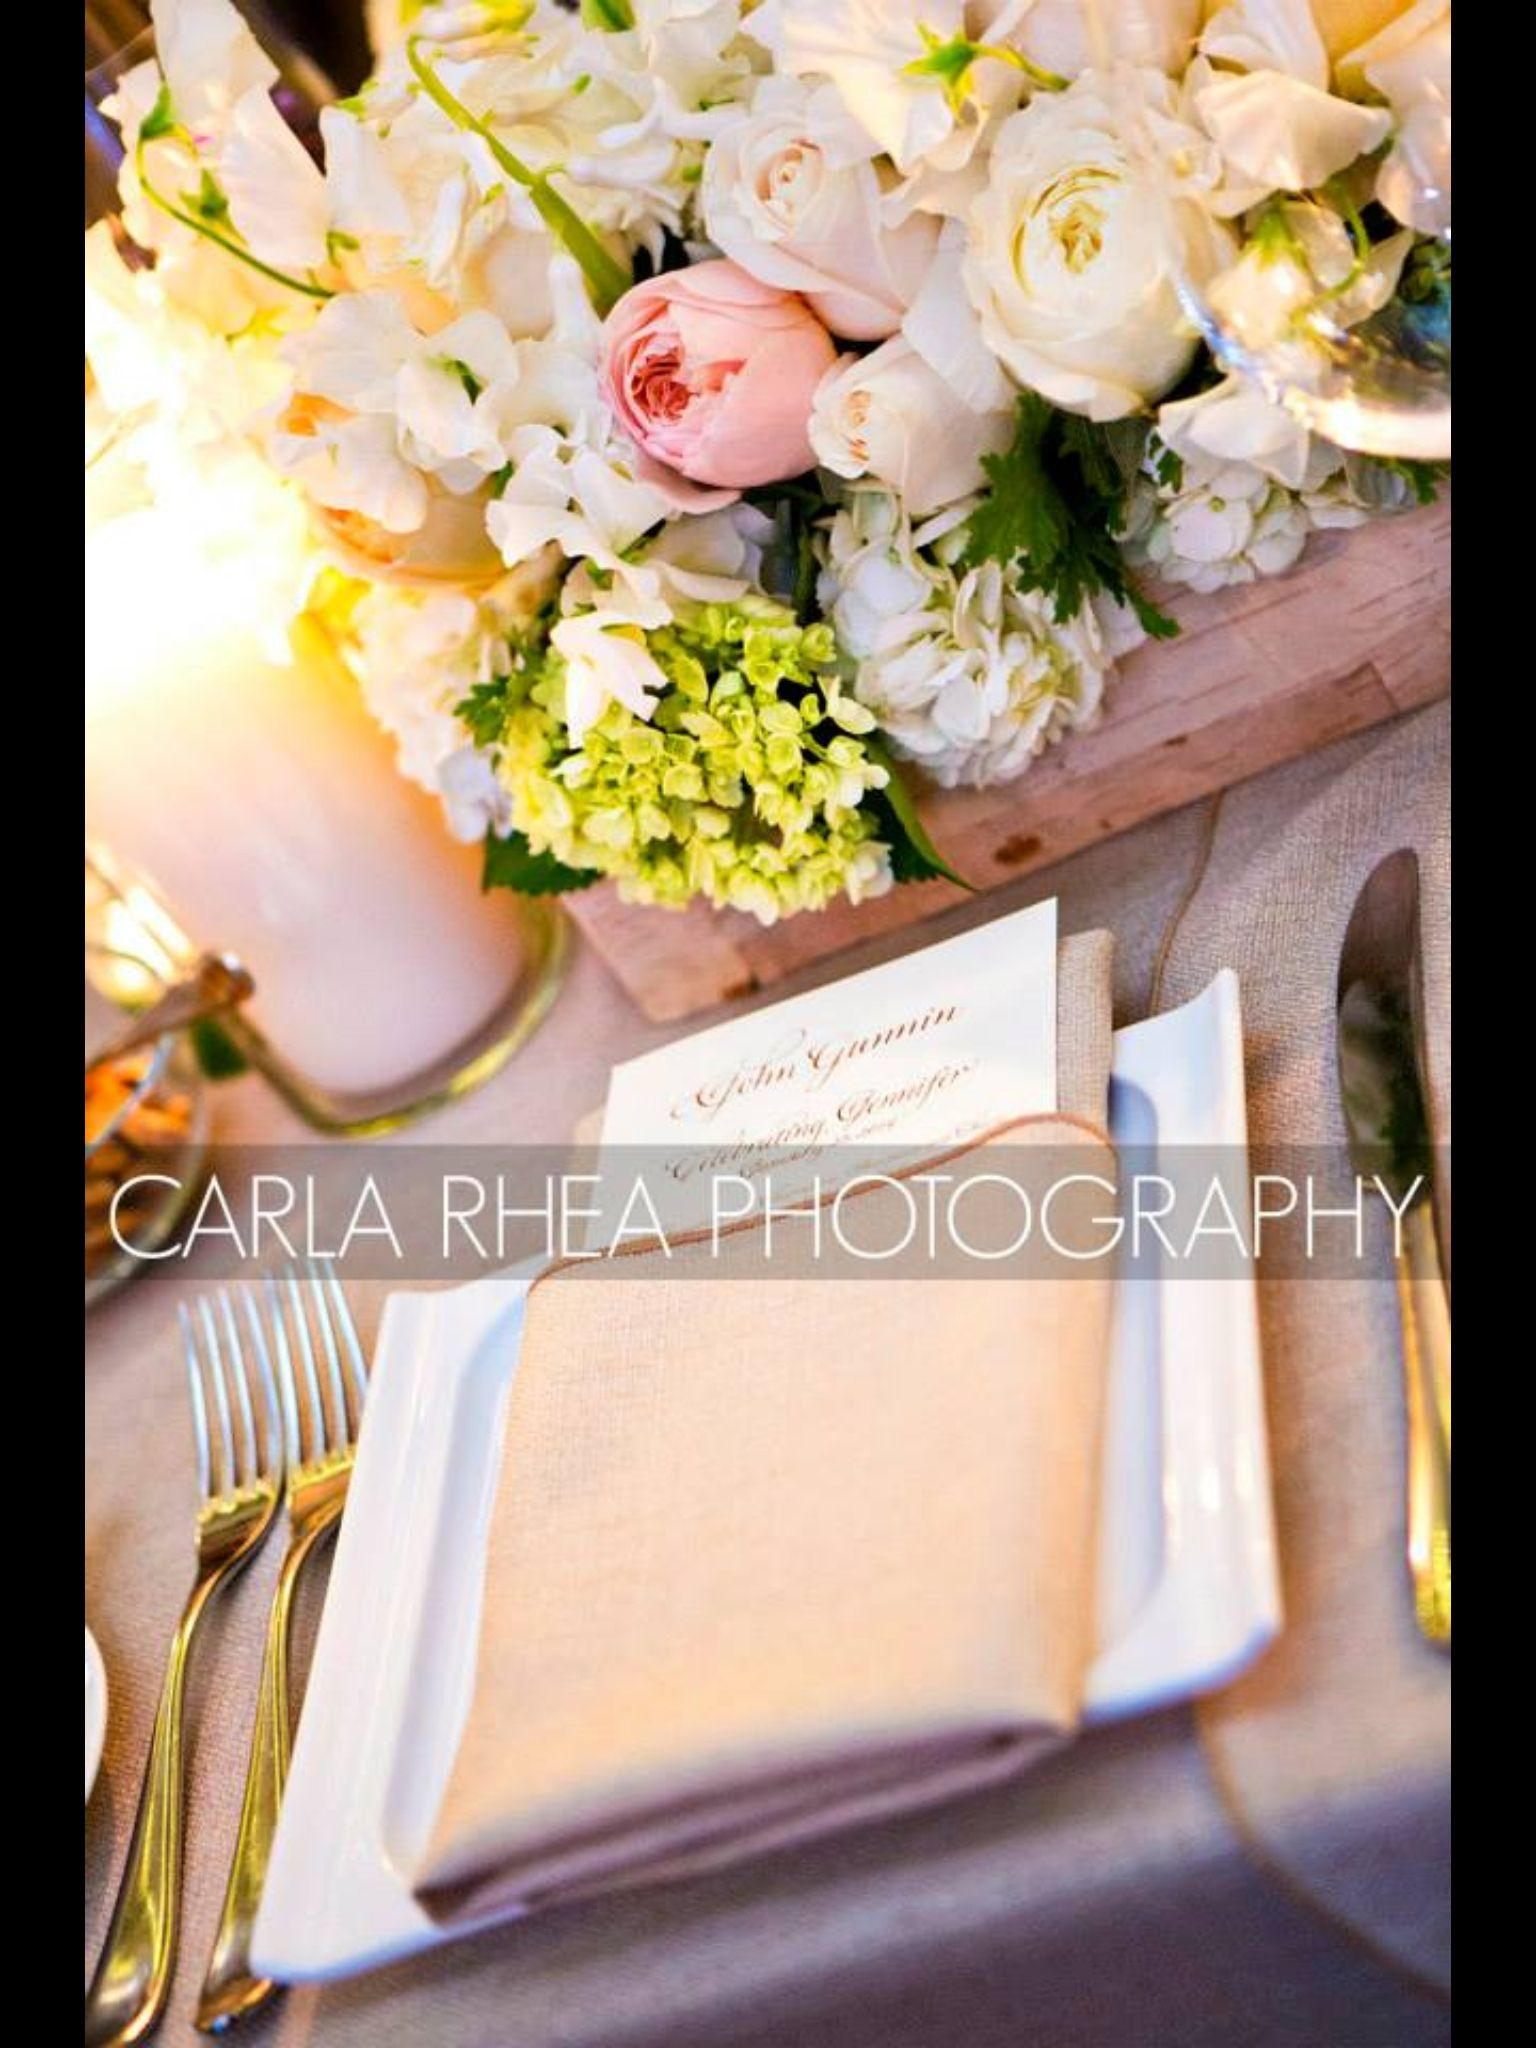 Table Scape, Carla Rhea Photography, events, flowers, table flowers